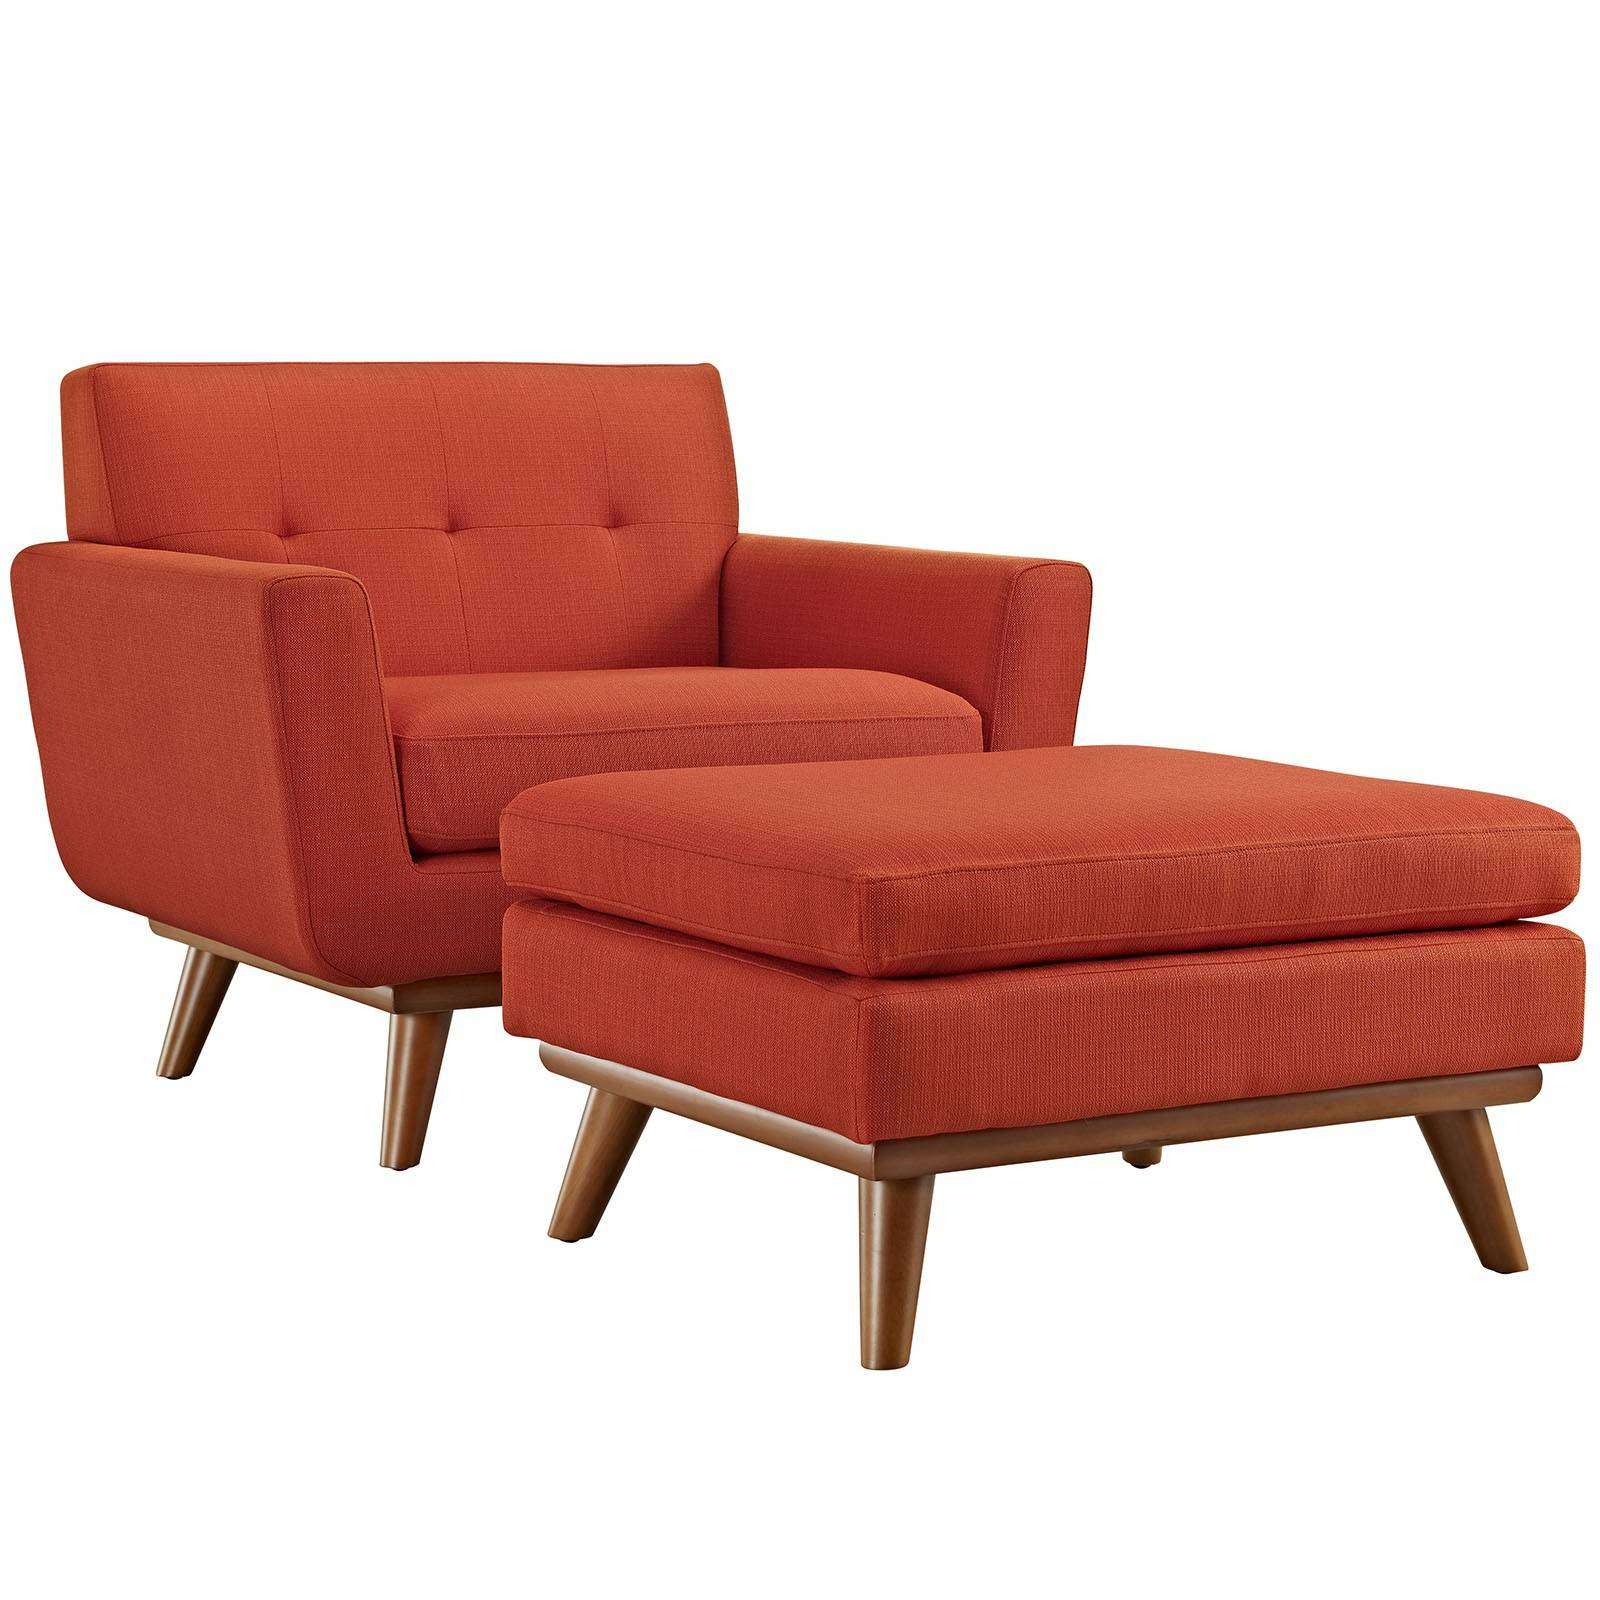 Modterior Living Room Arm Chairs Engage 2 Piece